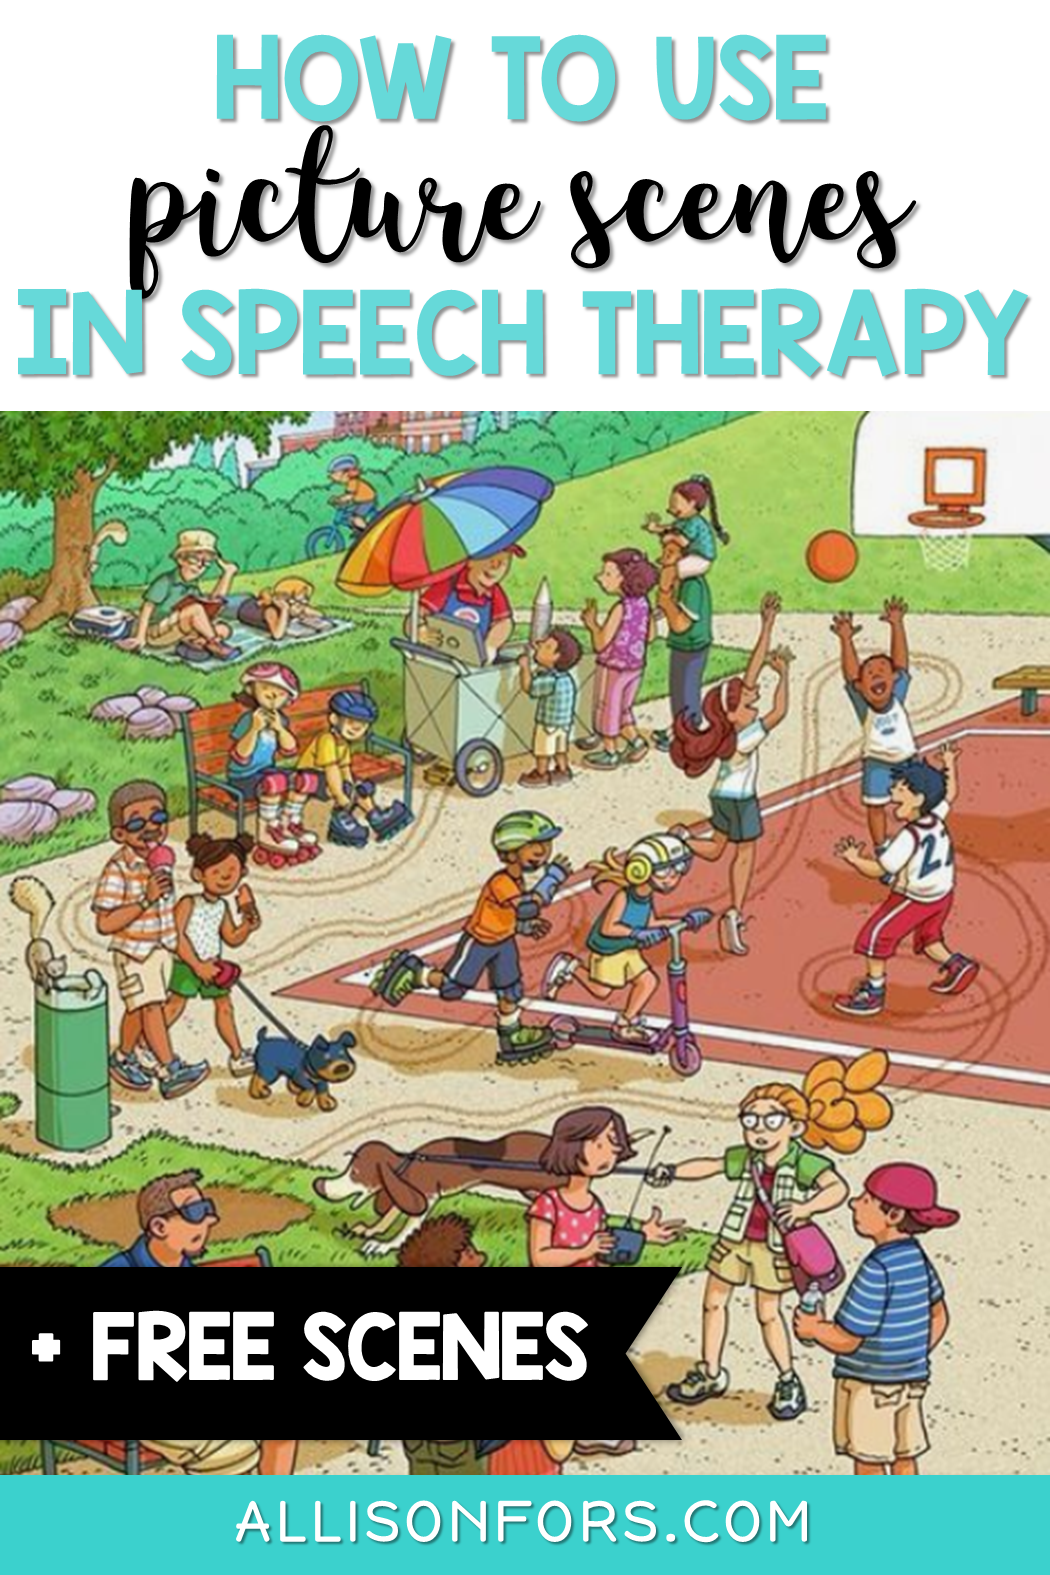 How To Use Picture Scenes In Speech Therapy Free Scenes